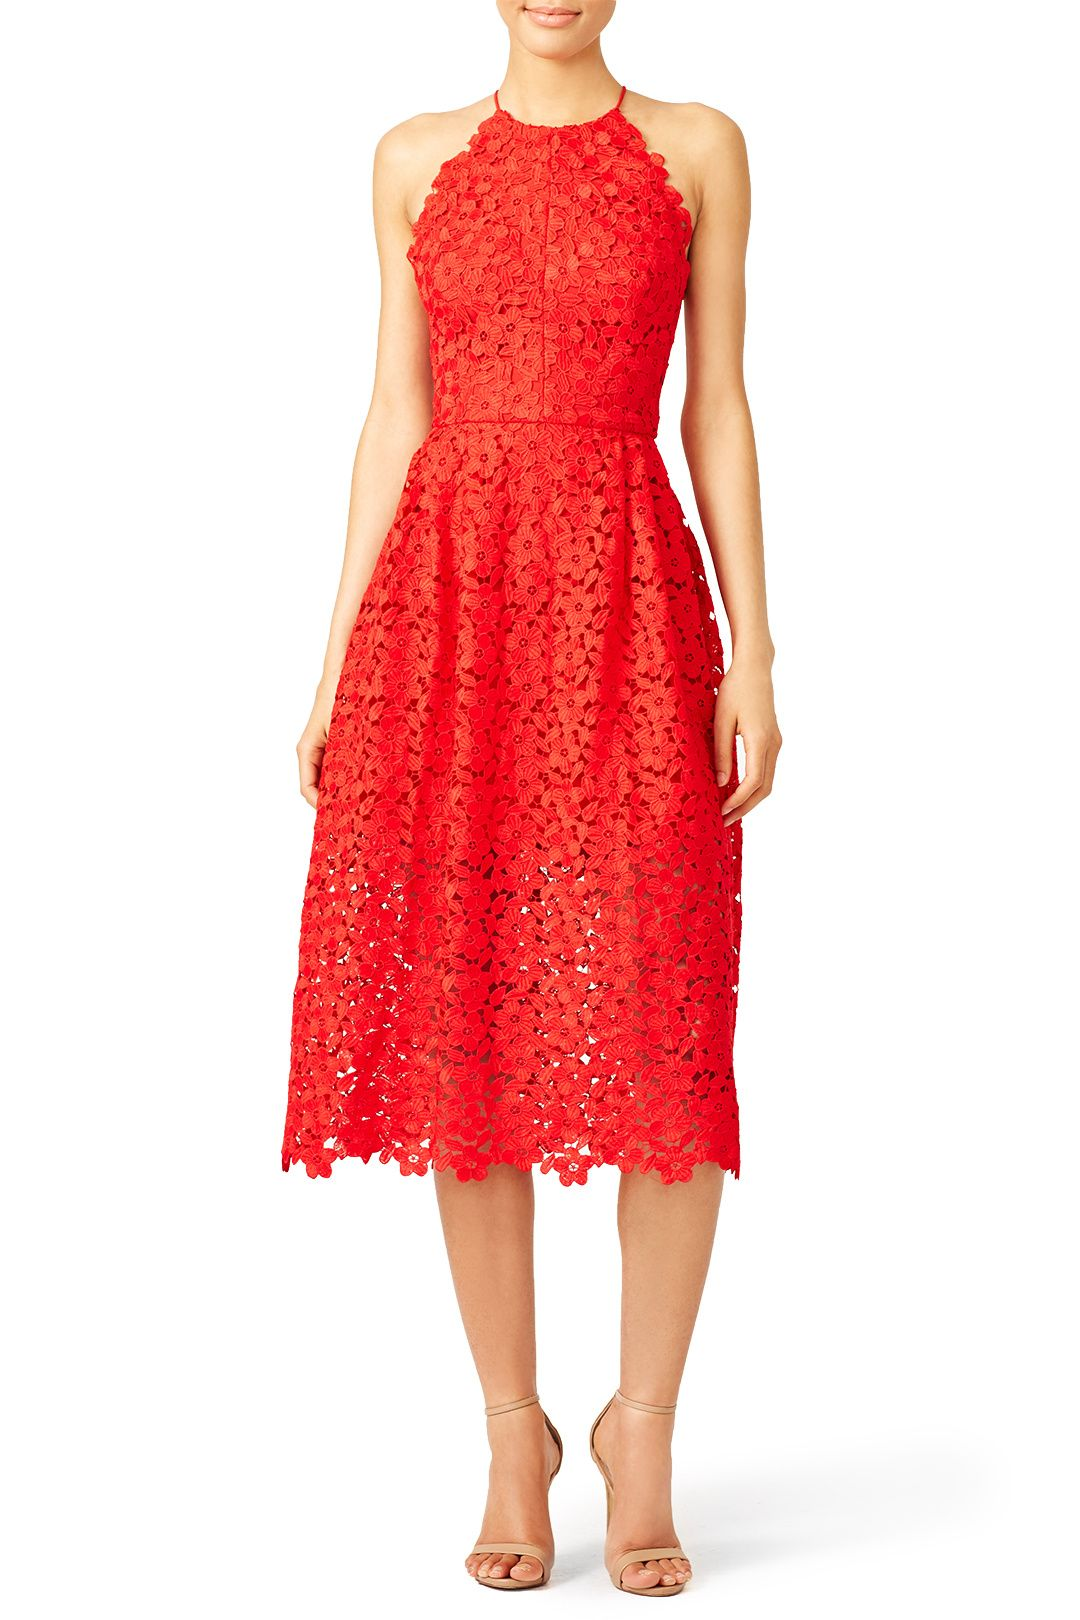 outlet sale most fashionable save up to 60% Rent Cherry Red Lace Halter Dress by Cynthia Rowley for $75 ...